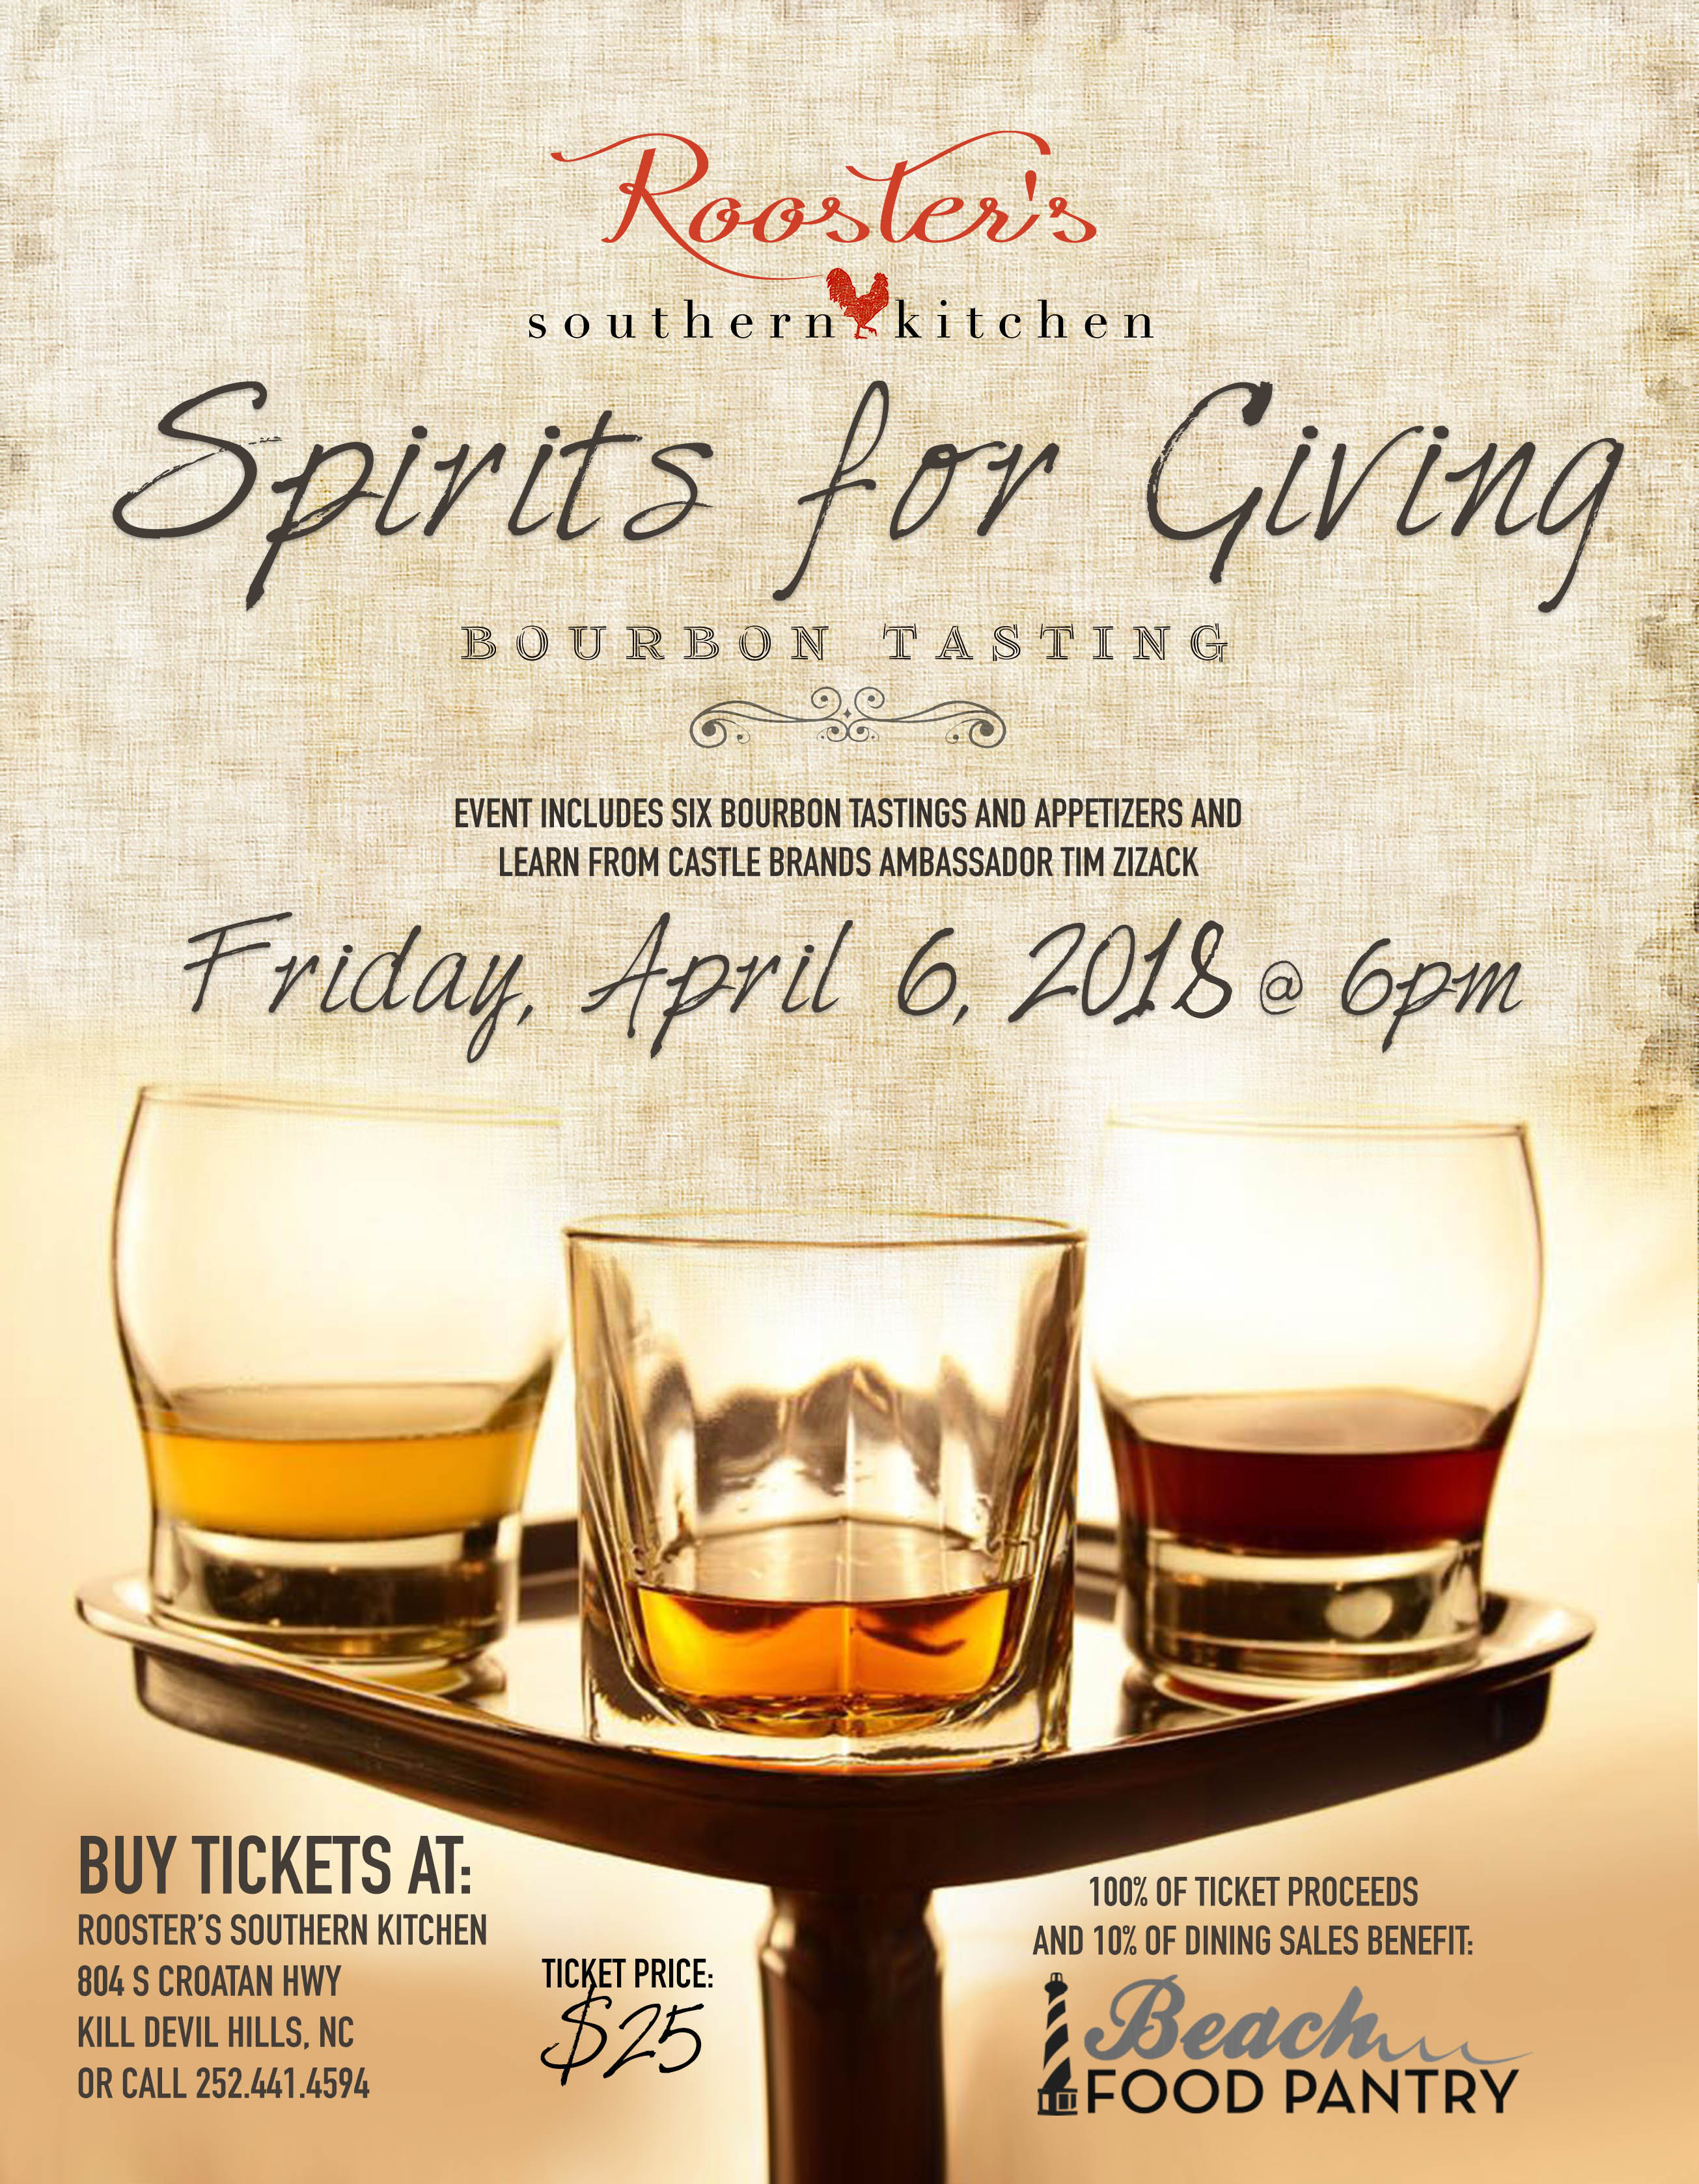 Rooster's Southern Kitchen Spirits for Giving Bourbon Tasting